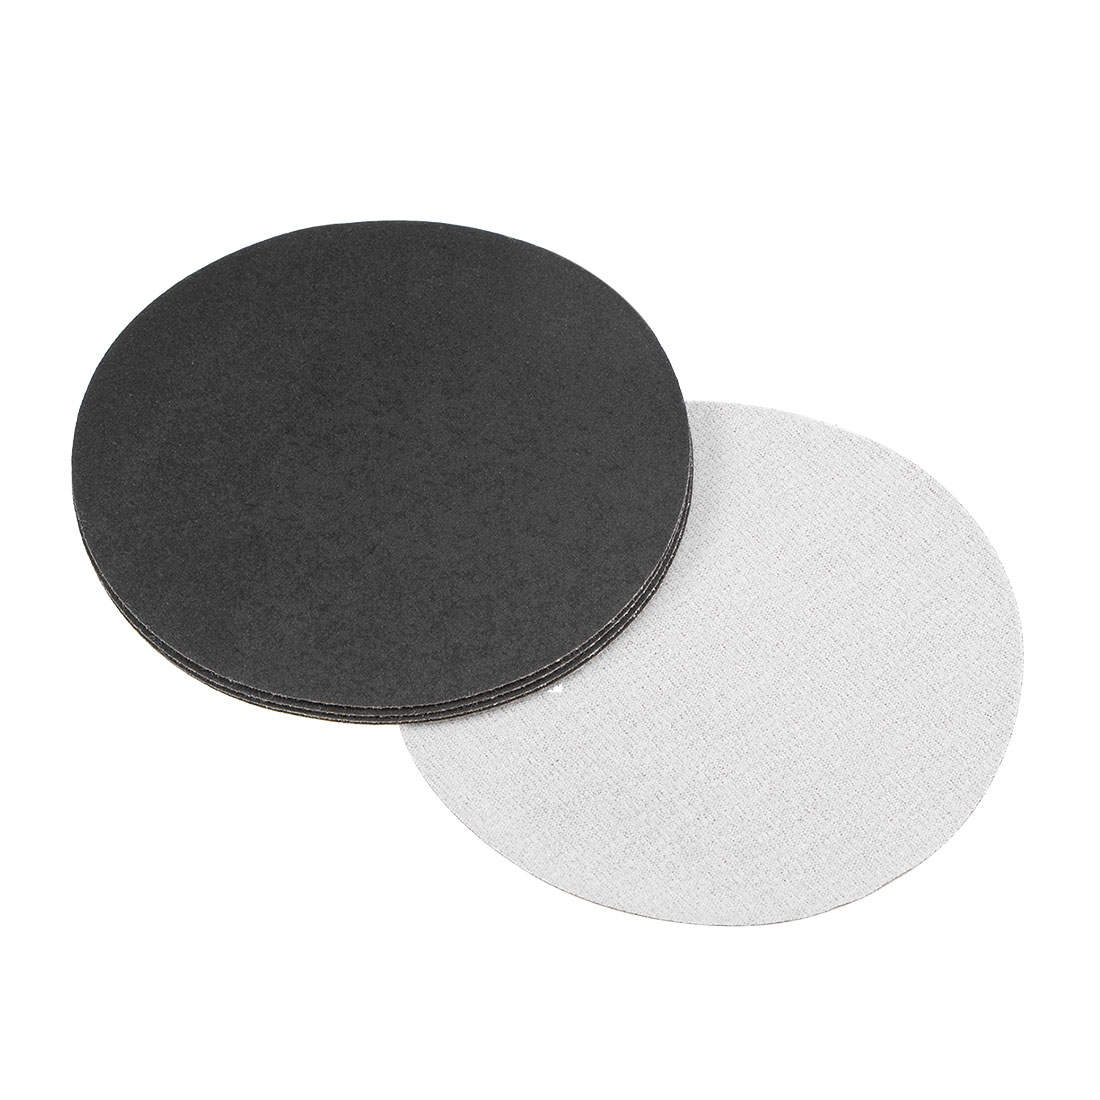 5 inch Wet Dry Discs 320 Grit Hook and Loop Sanding Disc Silicon Carbide 5pcs